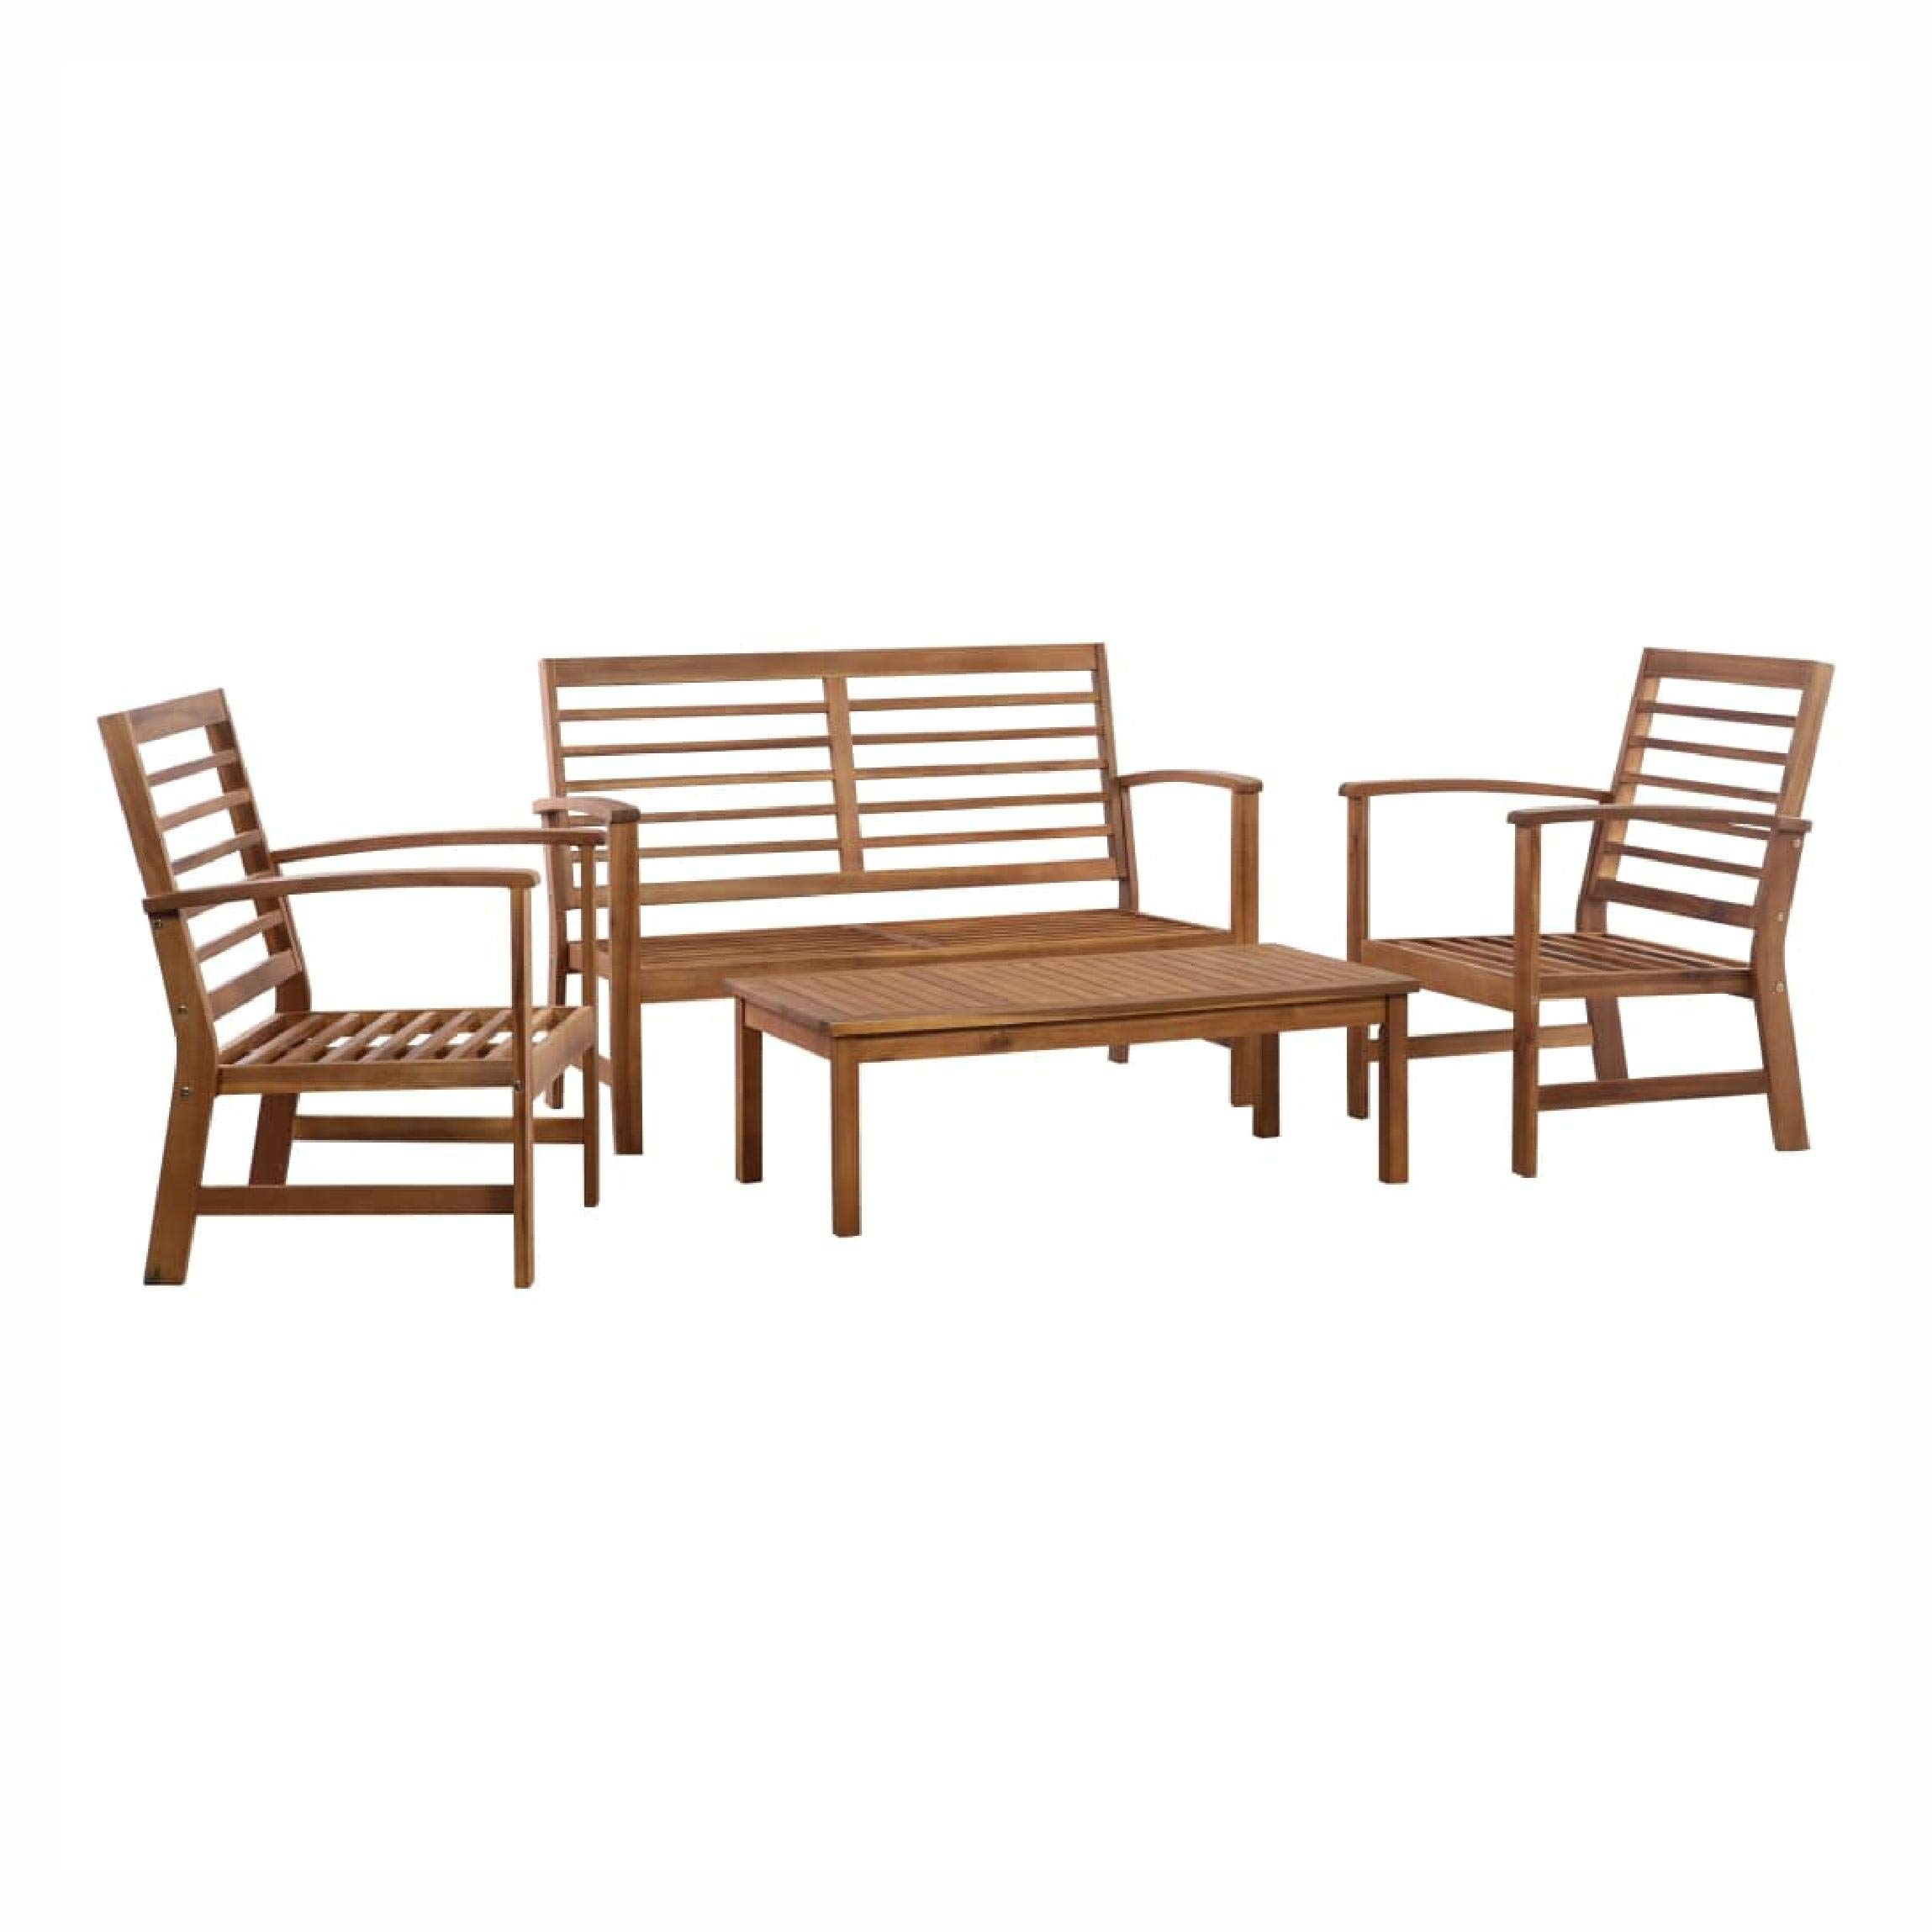 K&A Company Outdoor Furniture Set, 4 Piece Garden Lounge Set Solid Acacia Wood by K&A Company